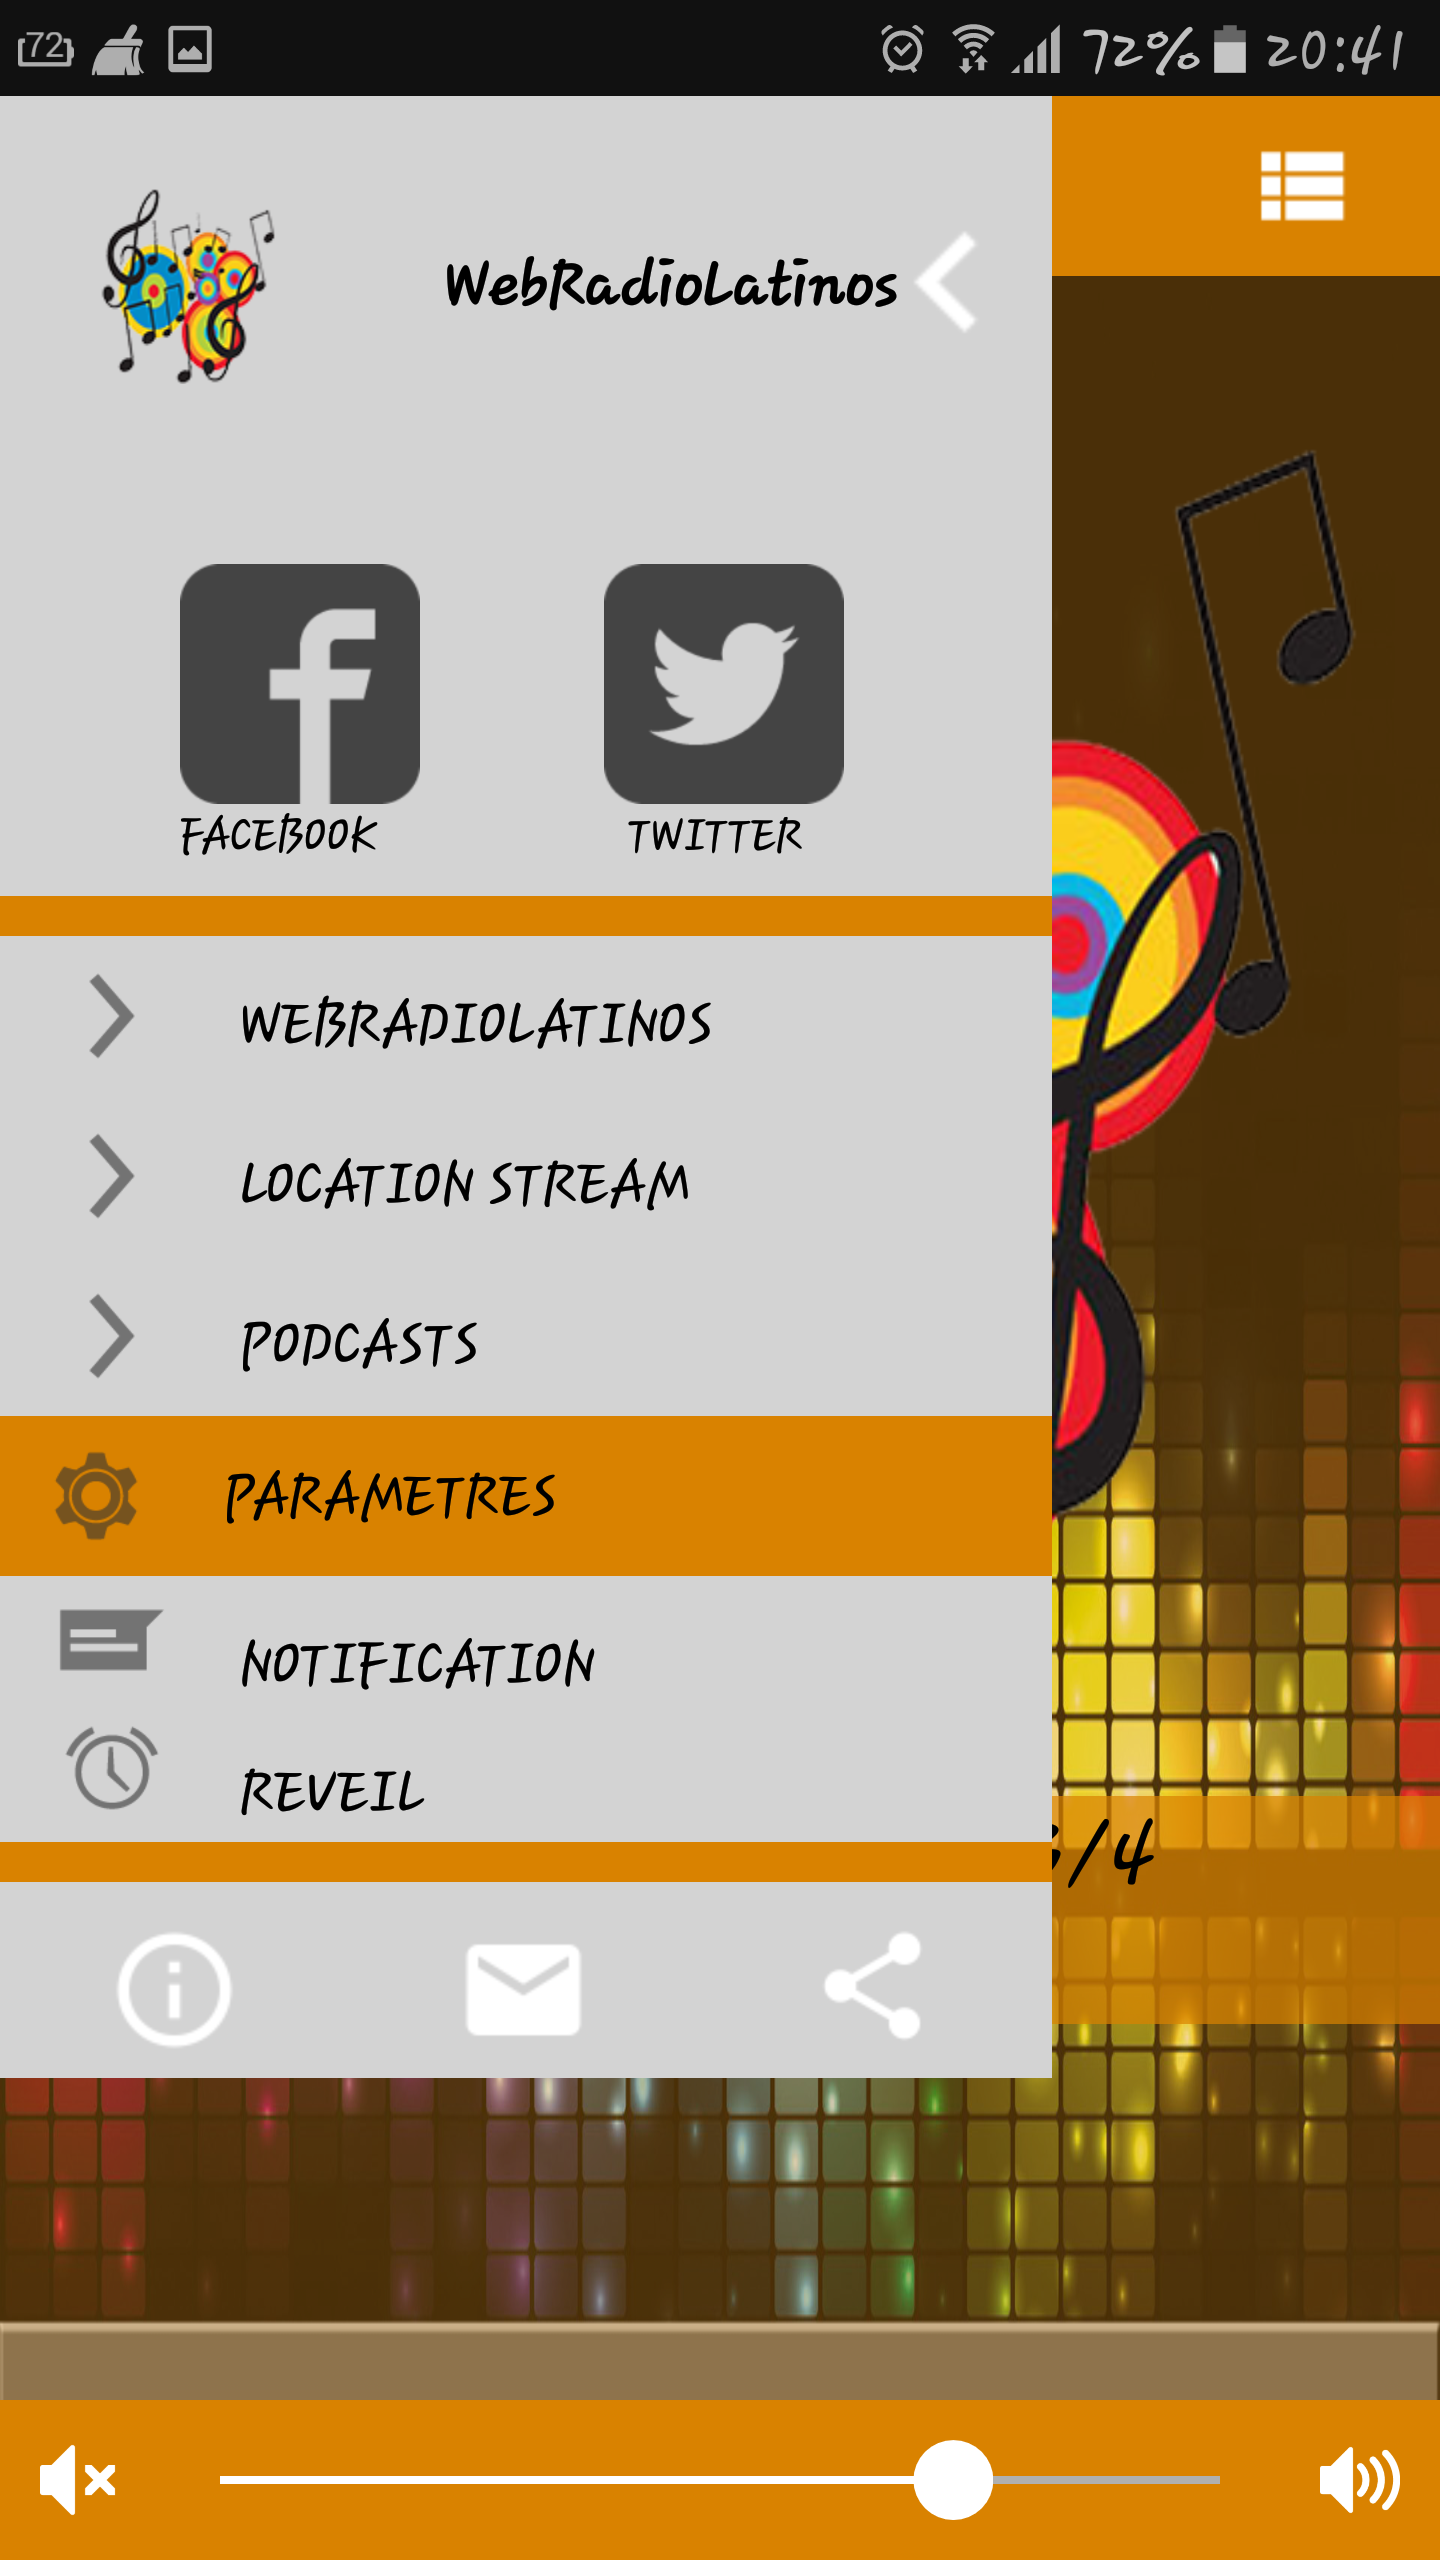 Application webradio Android Iphone menu links Facebook Twitter siteweb